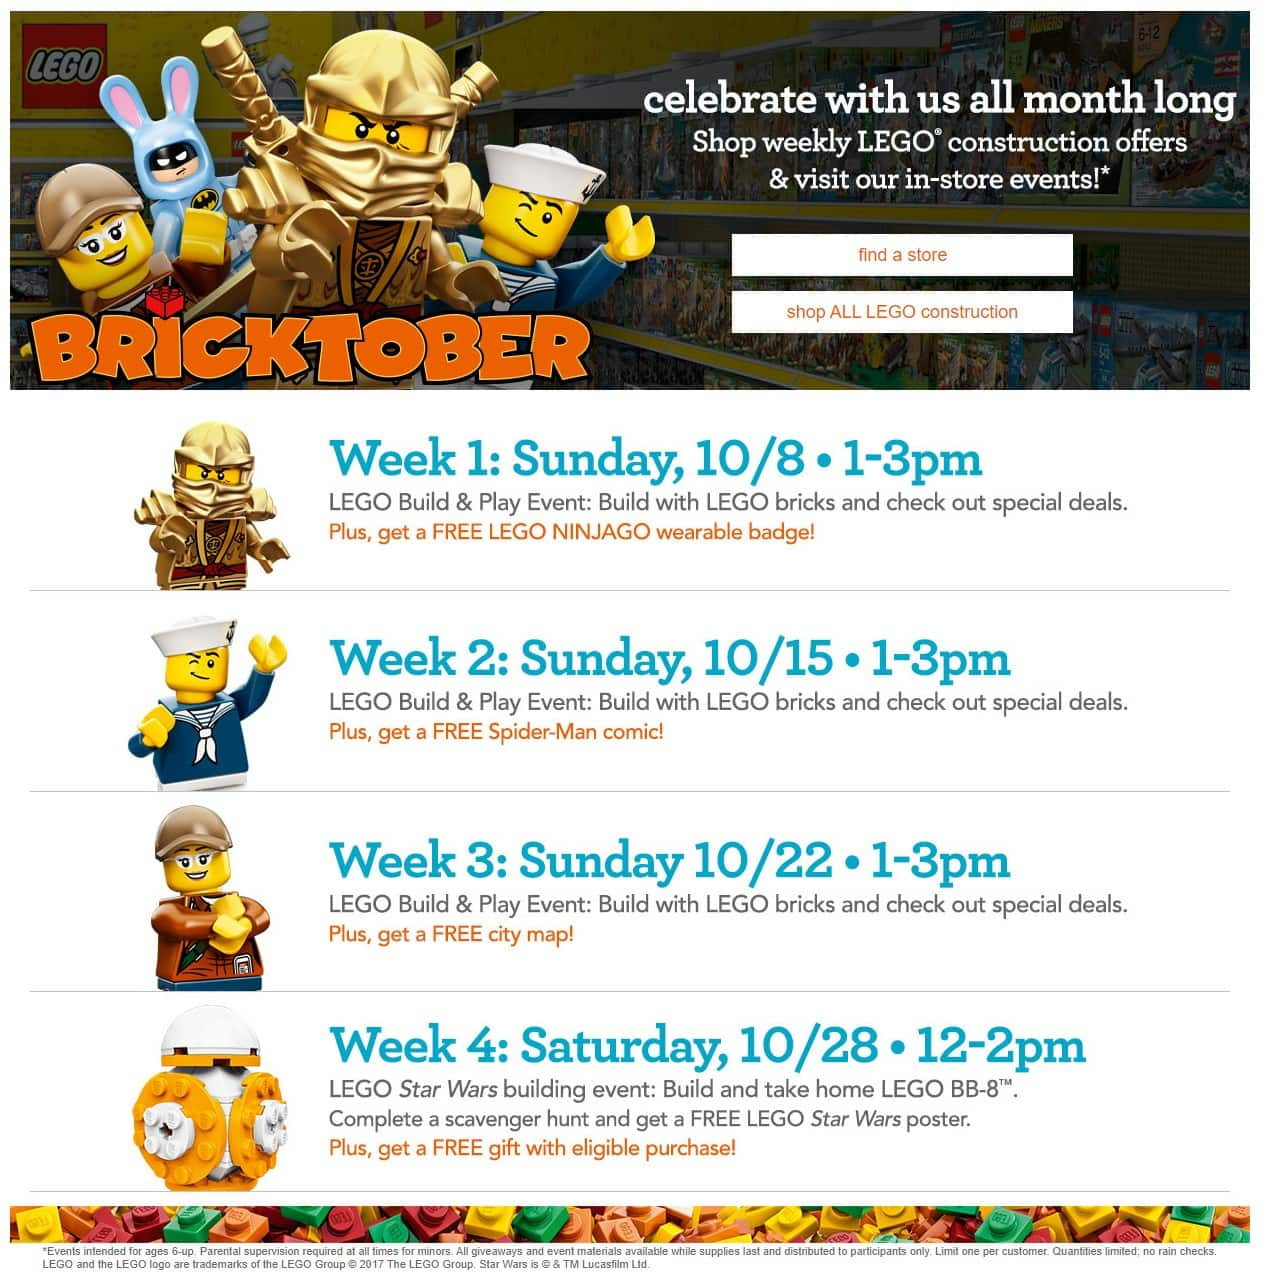 Toys R Us Bricktober Events for 10/8 , 10/15, 10/22. & 10/28. Free LEGO Ninjago Badge, Spider-Man Comic, City Map, LEGO BB-8, & Star Wars Poster